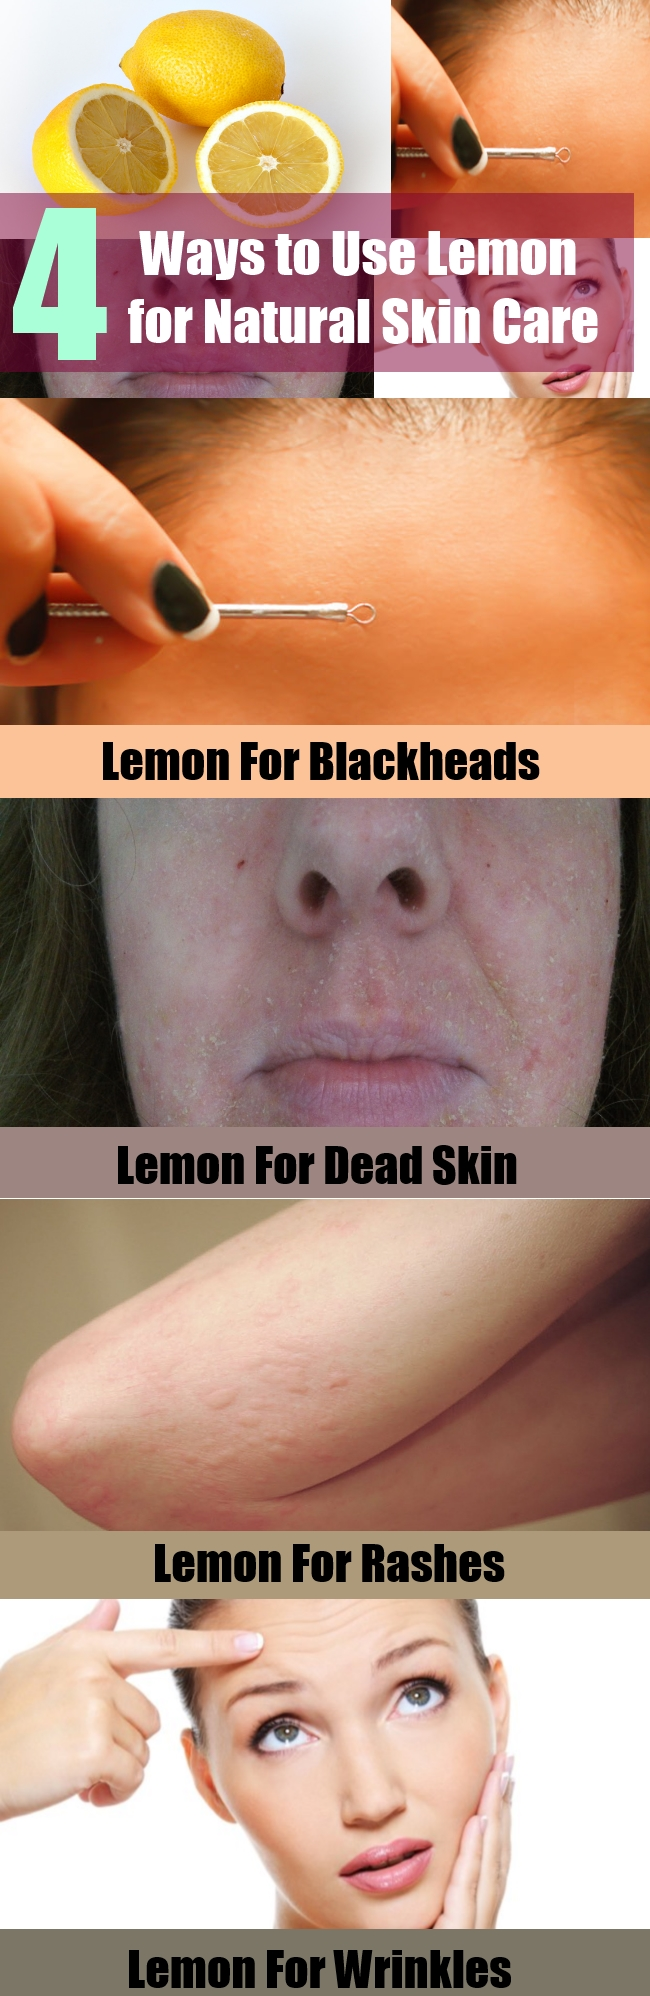 Ways to Use Lemon for Natural Skin Care